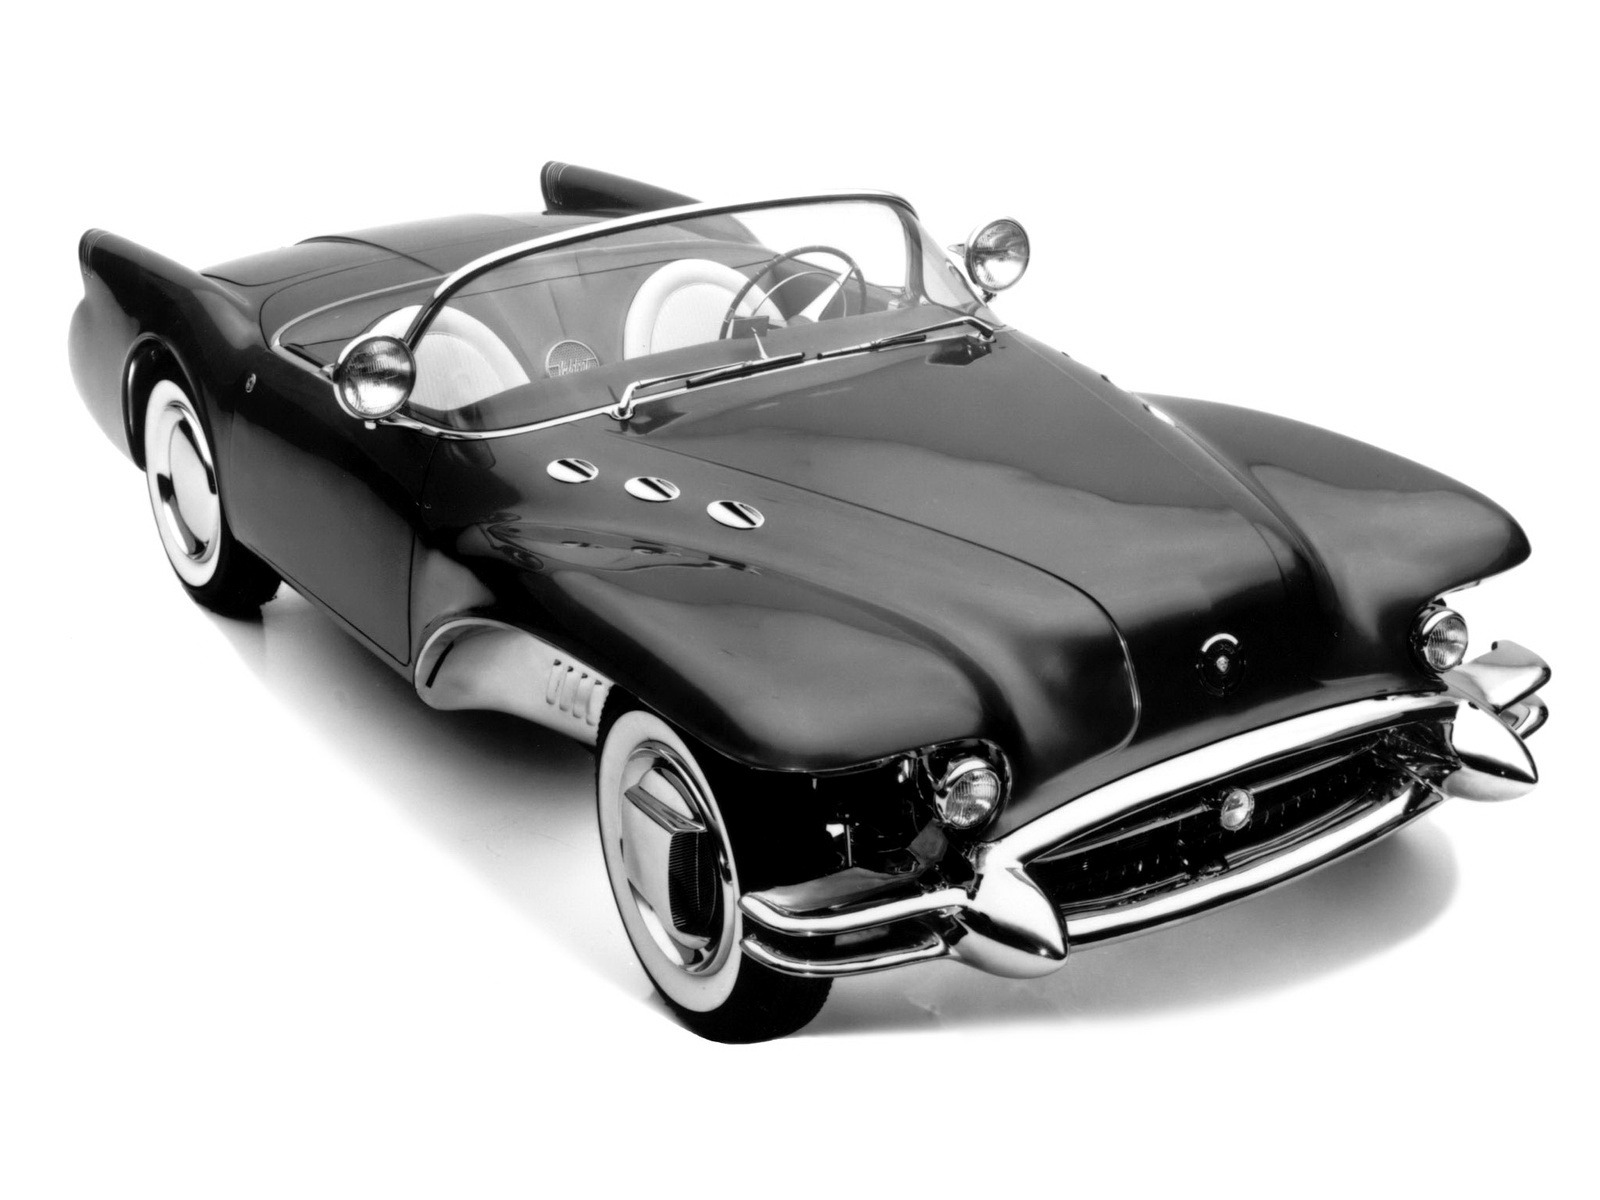 Buick Wildcat Ii 1954 Old Concept Cars Riviera Convertible The Car Had A Front Fender That Flared Straight Out From Body Exposing Entire Wheel Well And Part Of